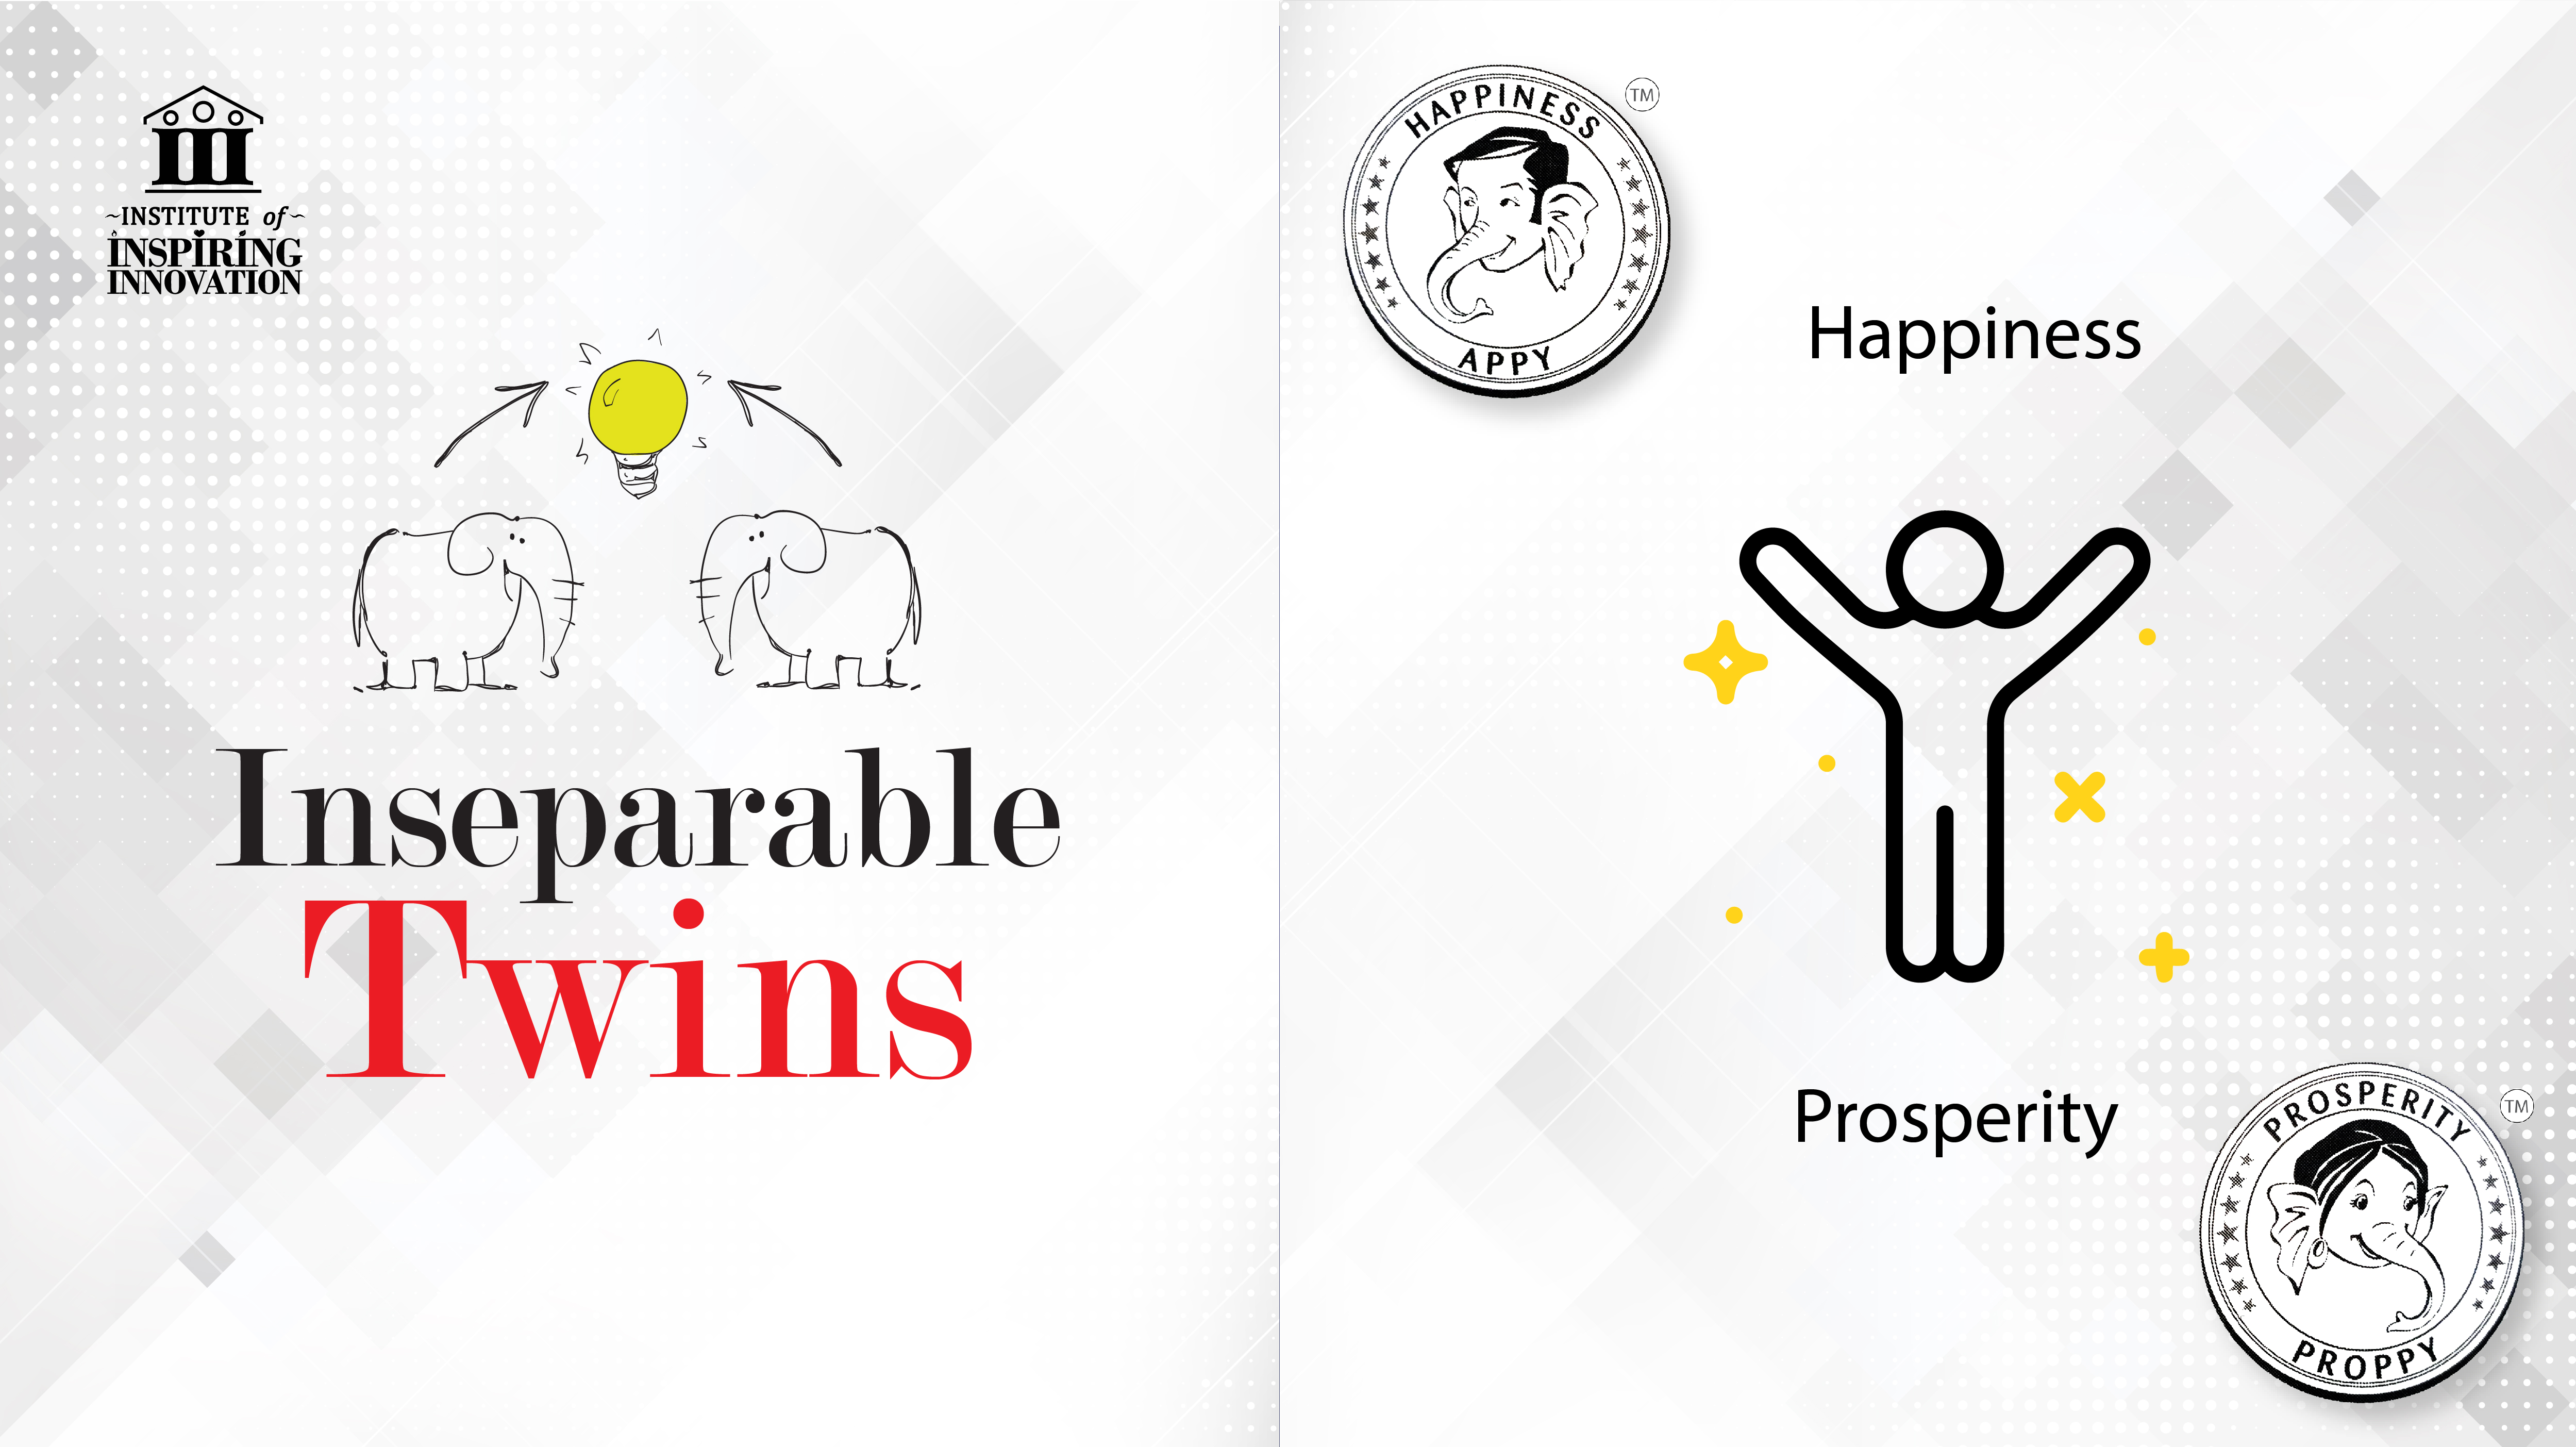 Happiness & Prosperity as Inseparable Twins by Naveen Lakkur